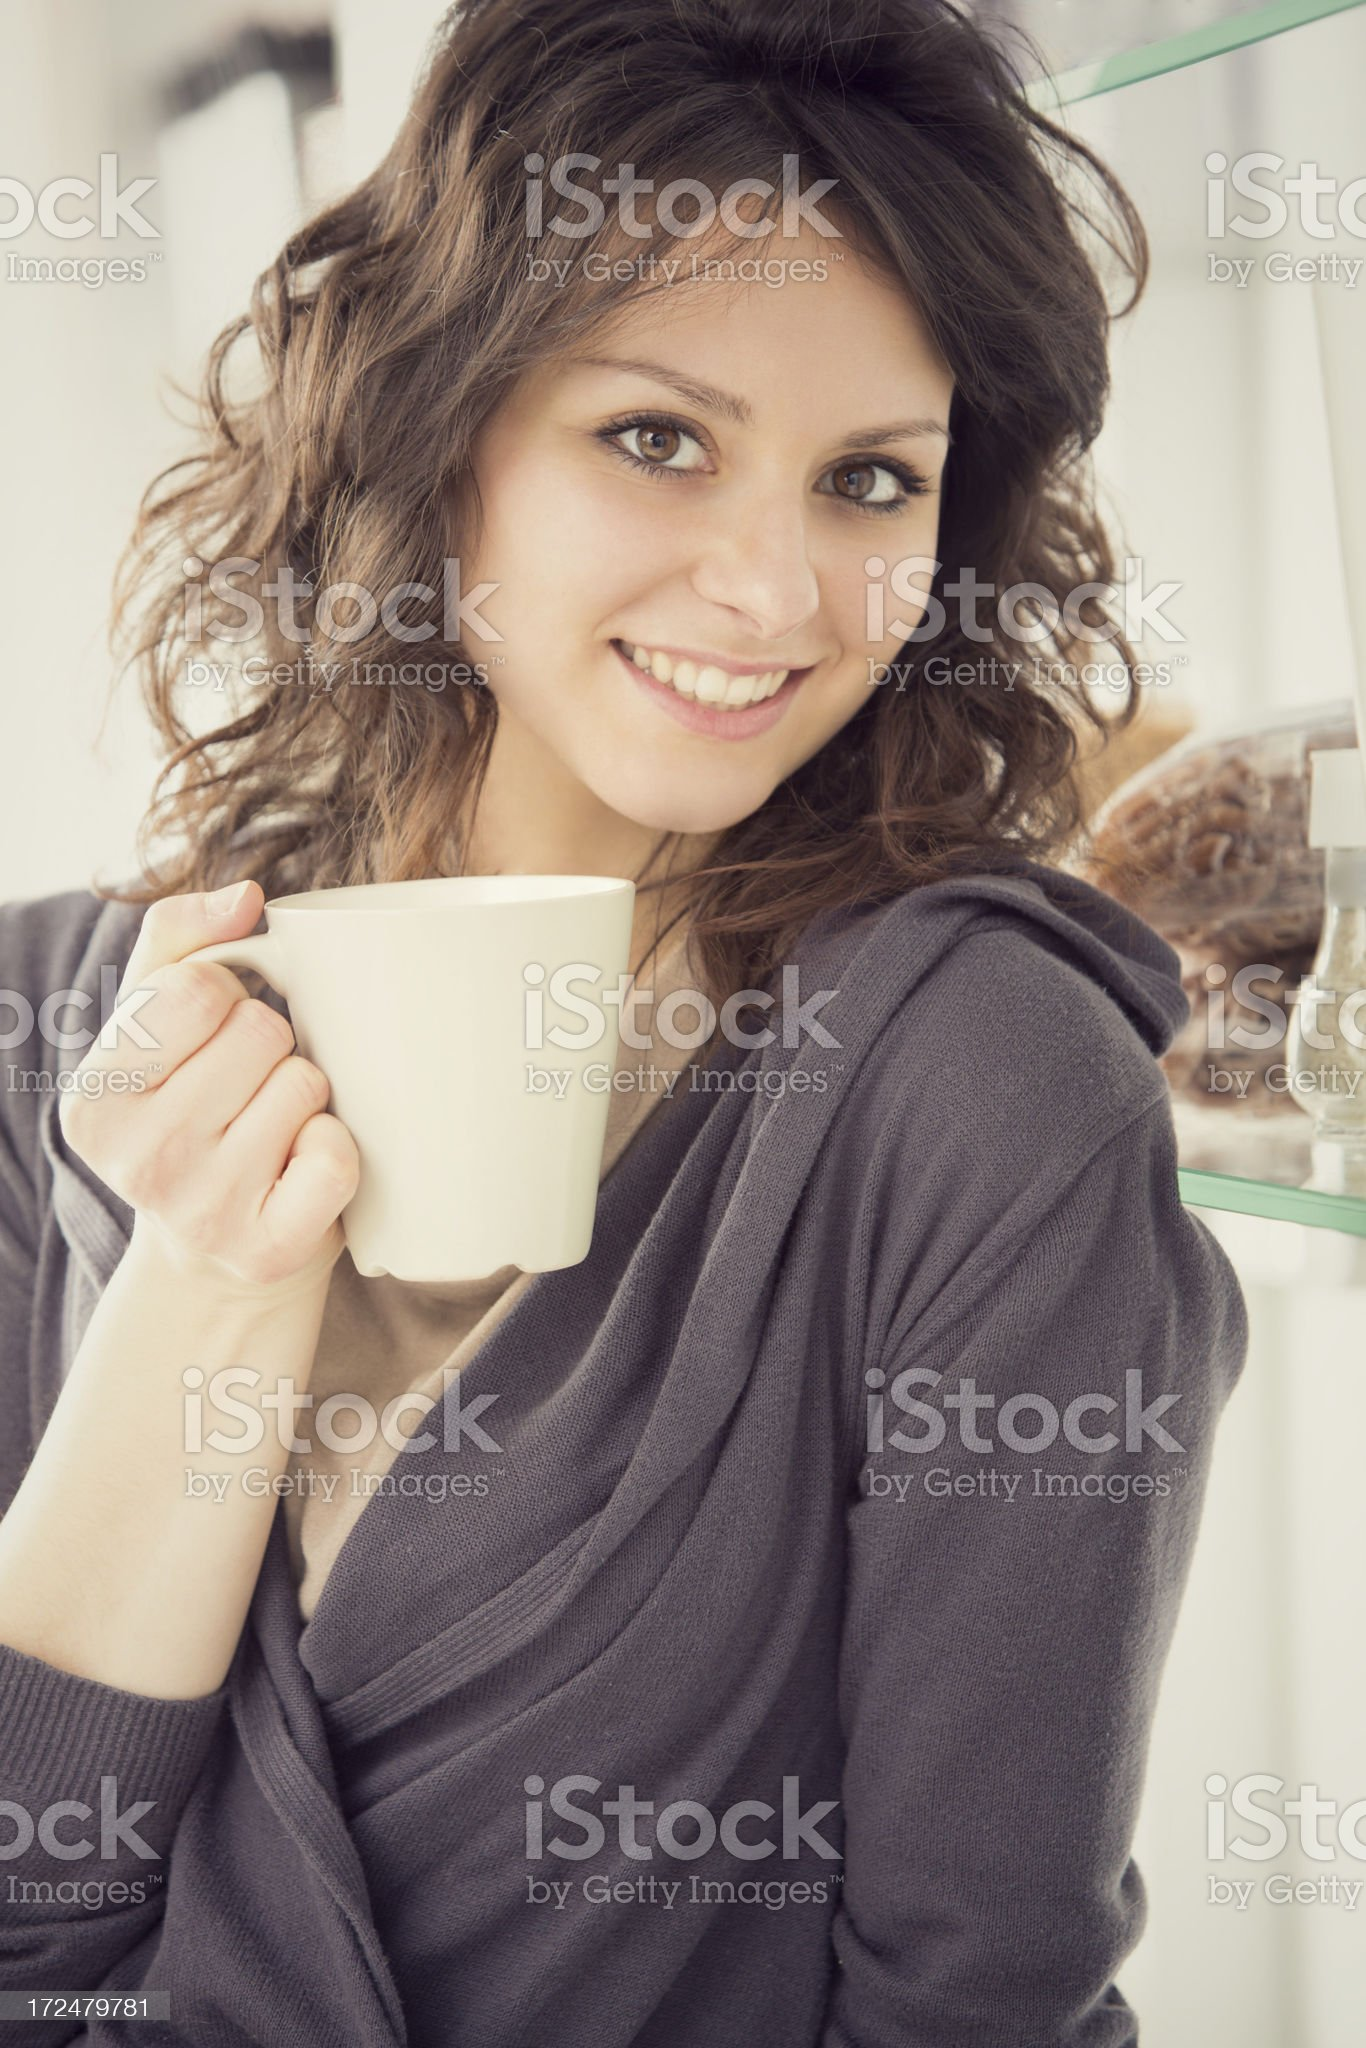 Beautiful girl in the kitchen portrait with cell phone royalty-free stock photo